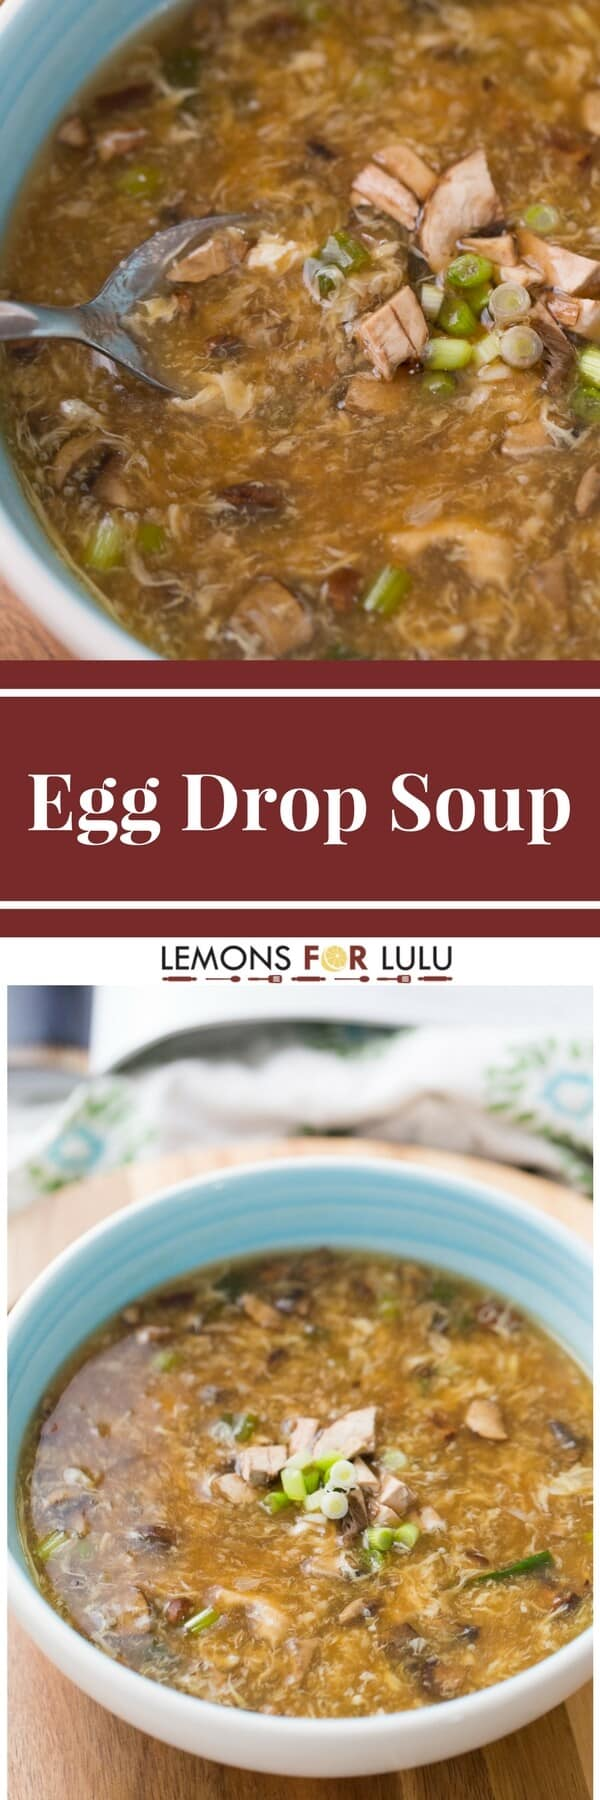 Love egg drop soup? You don't have to go to a restaurant to get it! Make this simple egg drop soup recipe at home!